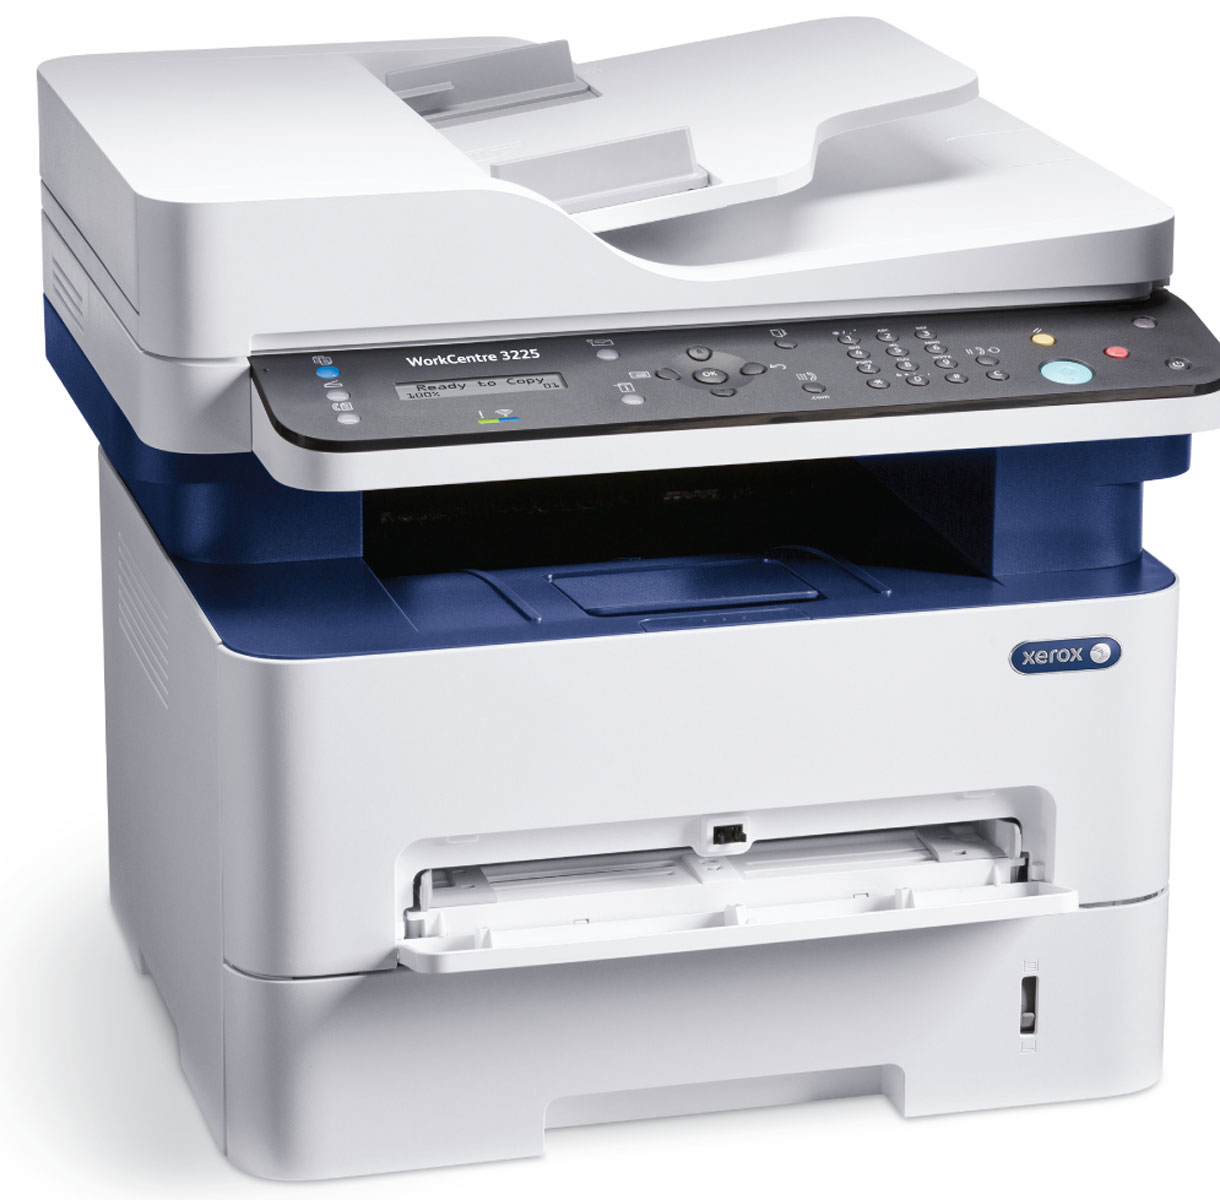 Xerox WorkCentre 3225DNI МФУ